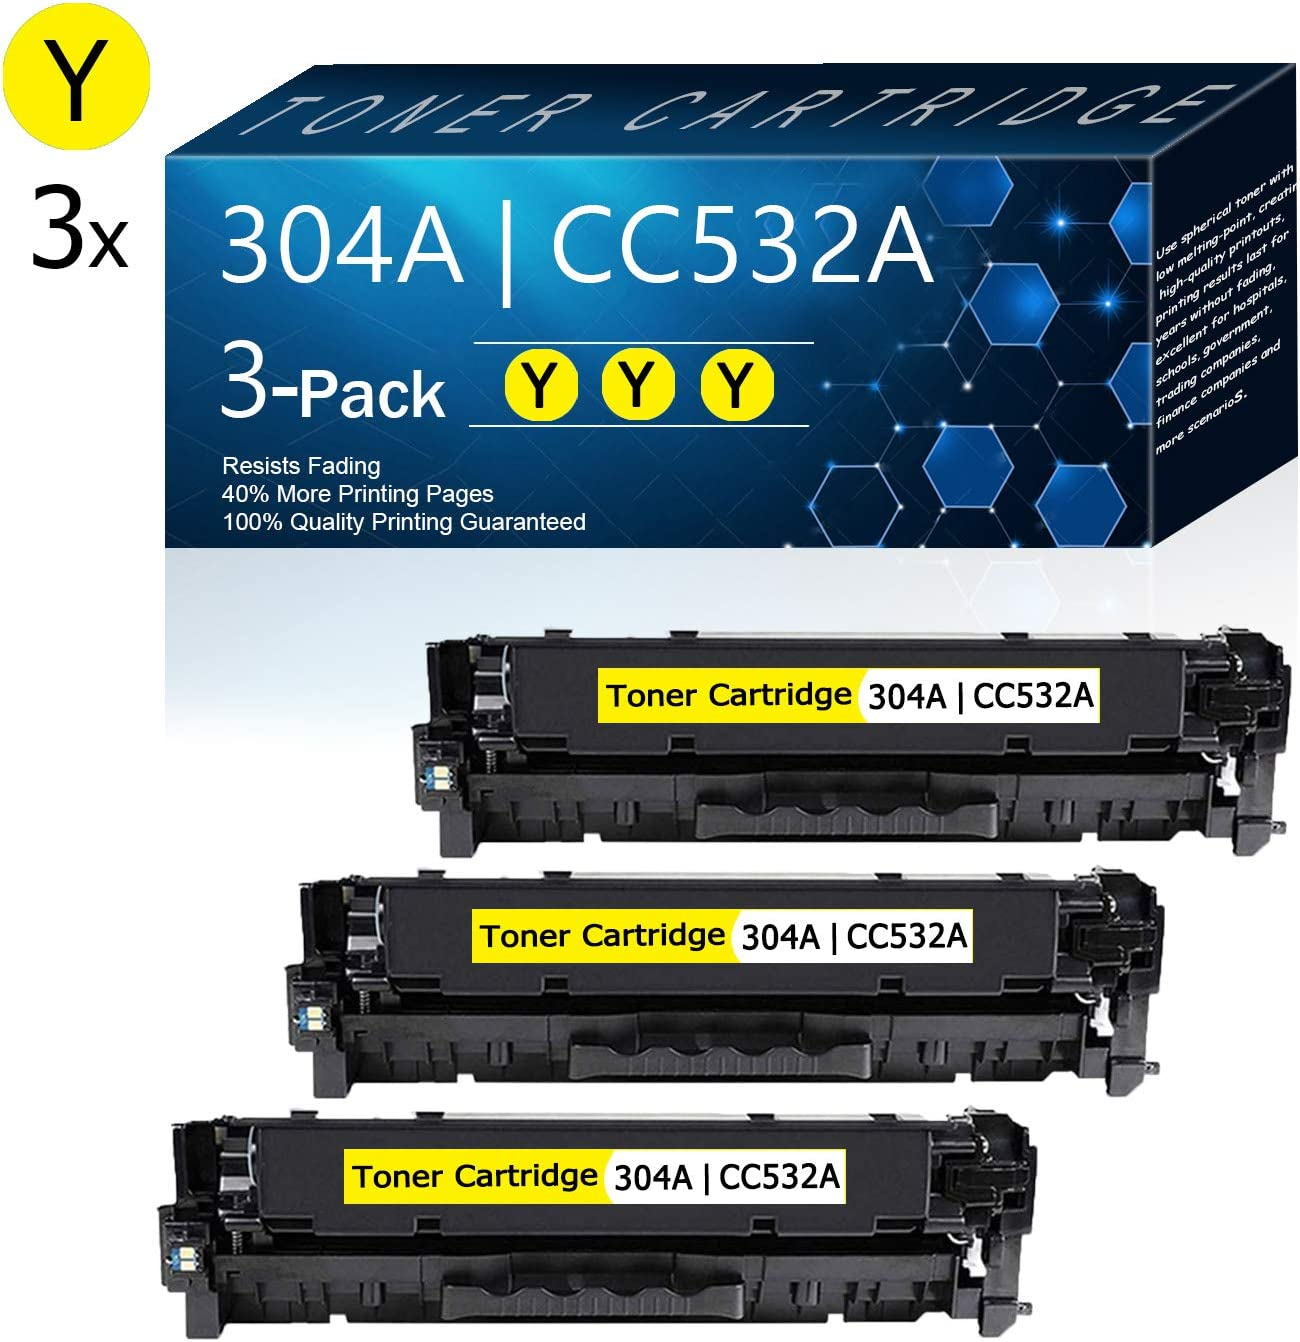 3 Pack Yellow 304A   CC532A Compatible Remanufactured Toner Cartridge Replacement for HP Color CP2025 CP2025n CP2025dn CP2025x CM2320n MFP 3CM2320fxi MFP CM2320nf MFP Printers Toner.